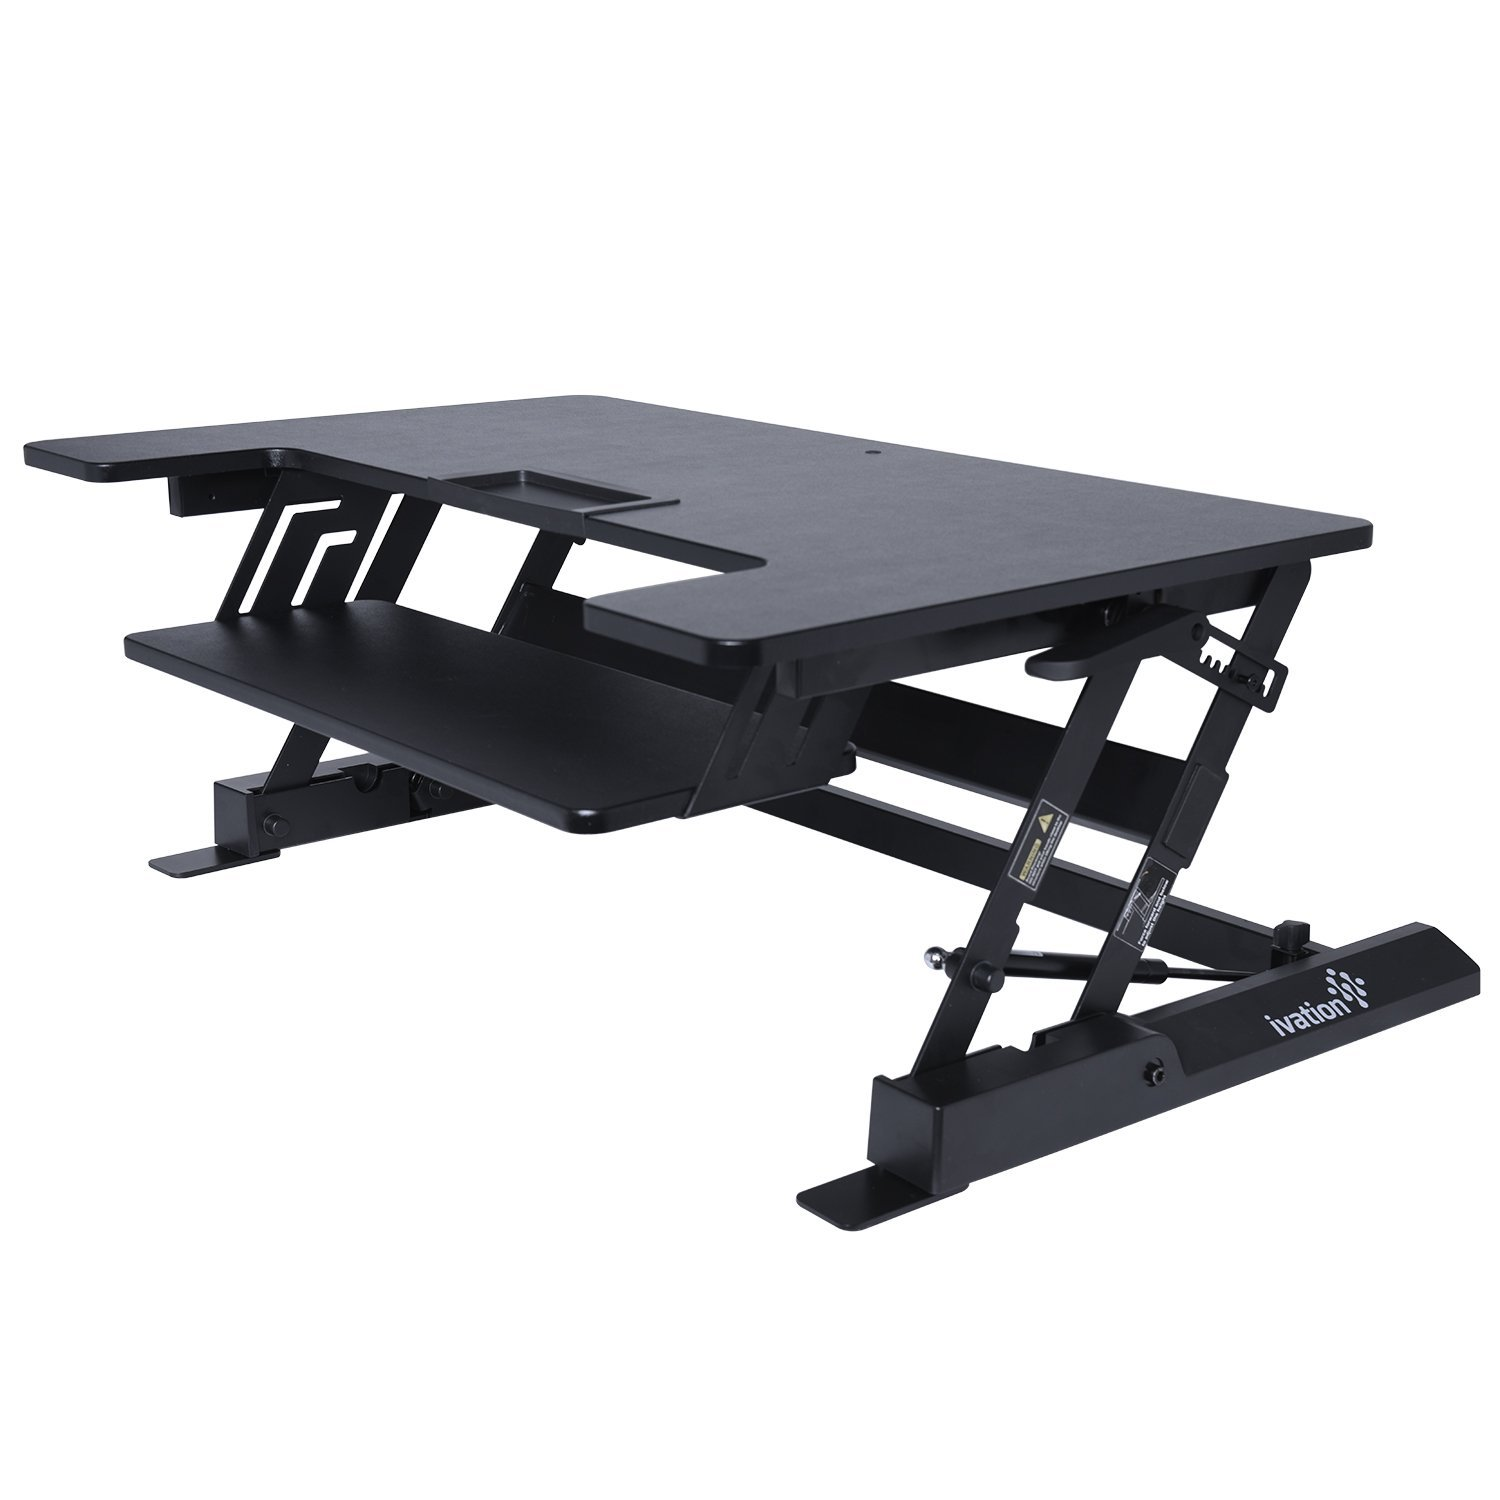 "Ivation 36"" Height-Adjustable Sit-to-Stand Desk with Dual Surfaces Sized & Positioned for Computer Monitors & Keyboard – Rests on Your Existing Desk & Simply Slides Between Sitting & Standing Heights"